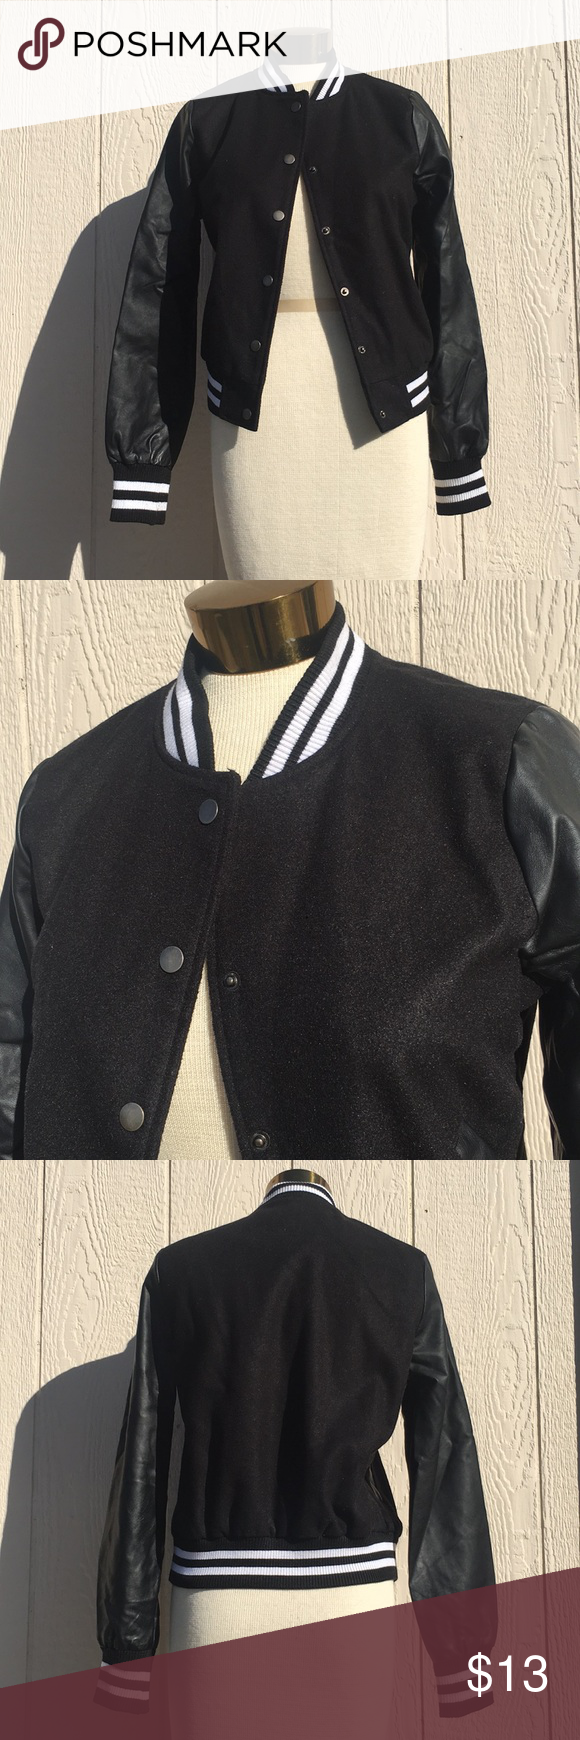 Black and White Varsity Jacket Lightly used black and white varsity jacket. No damage and clean. Buttons snap. Keeps you warm on a chilly day. Comes from a smoke free home Jackets & Coats #varsityjacketoutfit